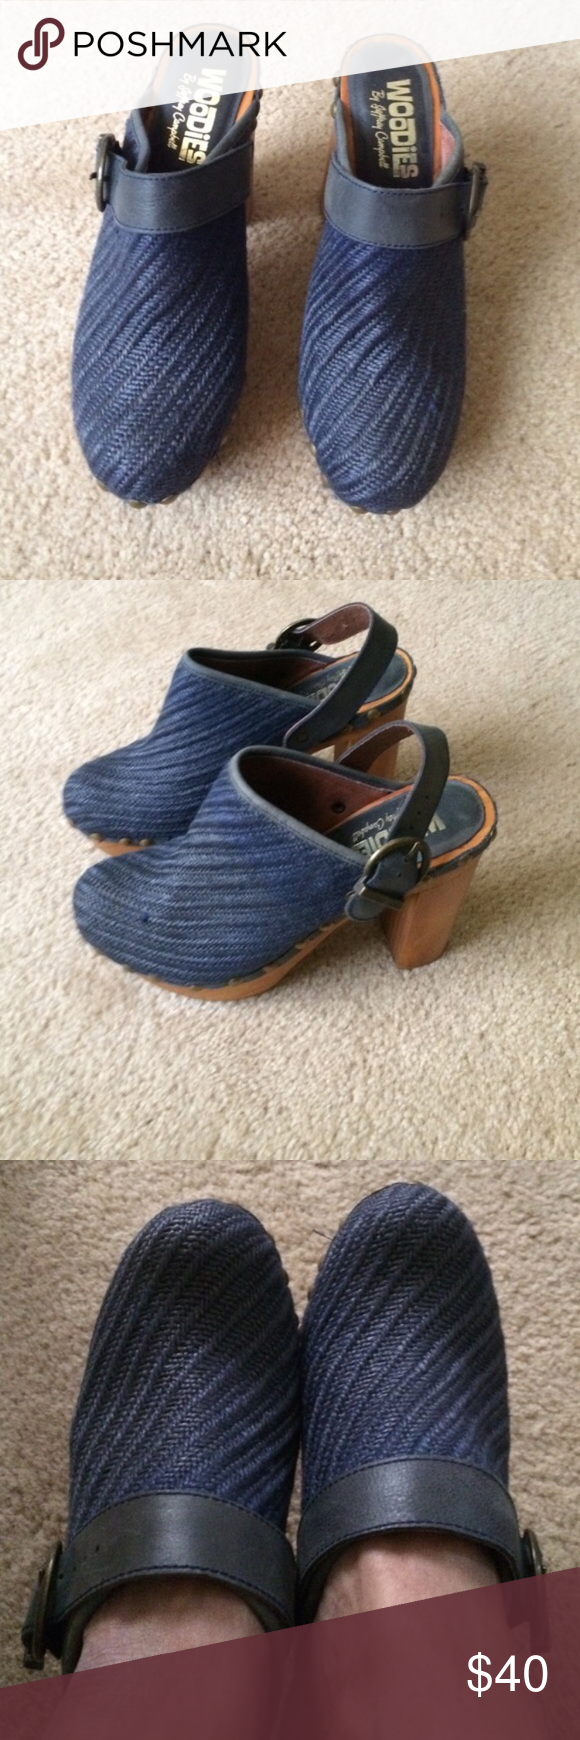 Jeffery Campbell woodies Make me an offer! These clogs are super cute. They have some wear but truly not much. They look fantastic with cropped jeans or skirts. Super cute. Jeffrey Campbell Shoes Mules & Clogs